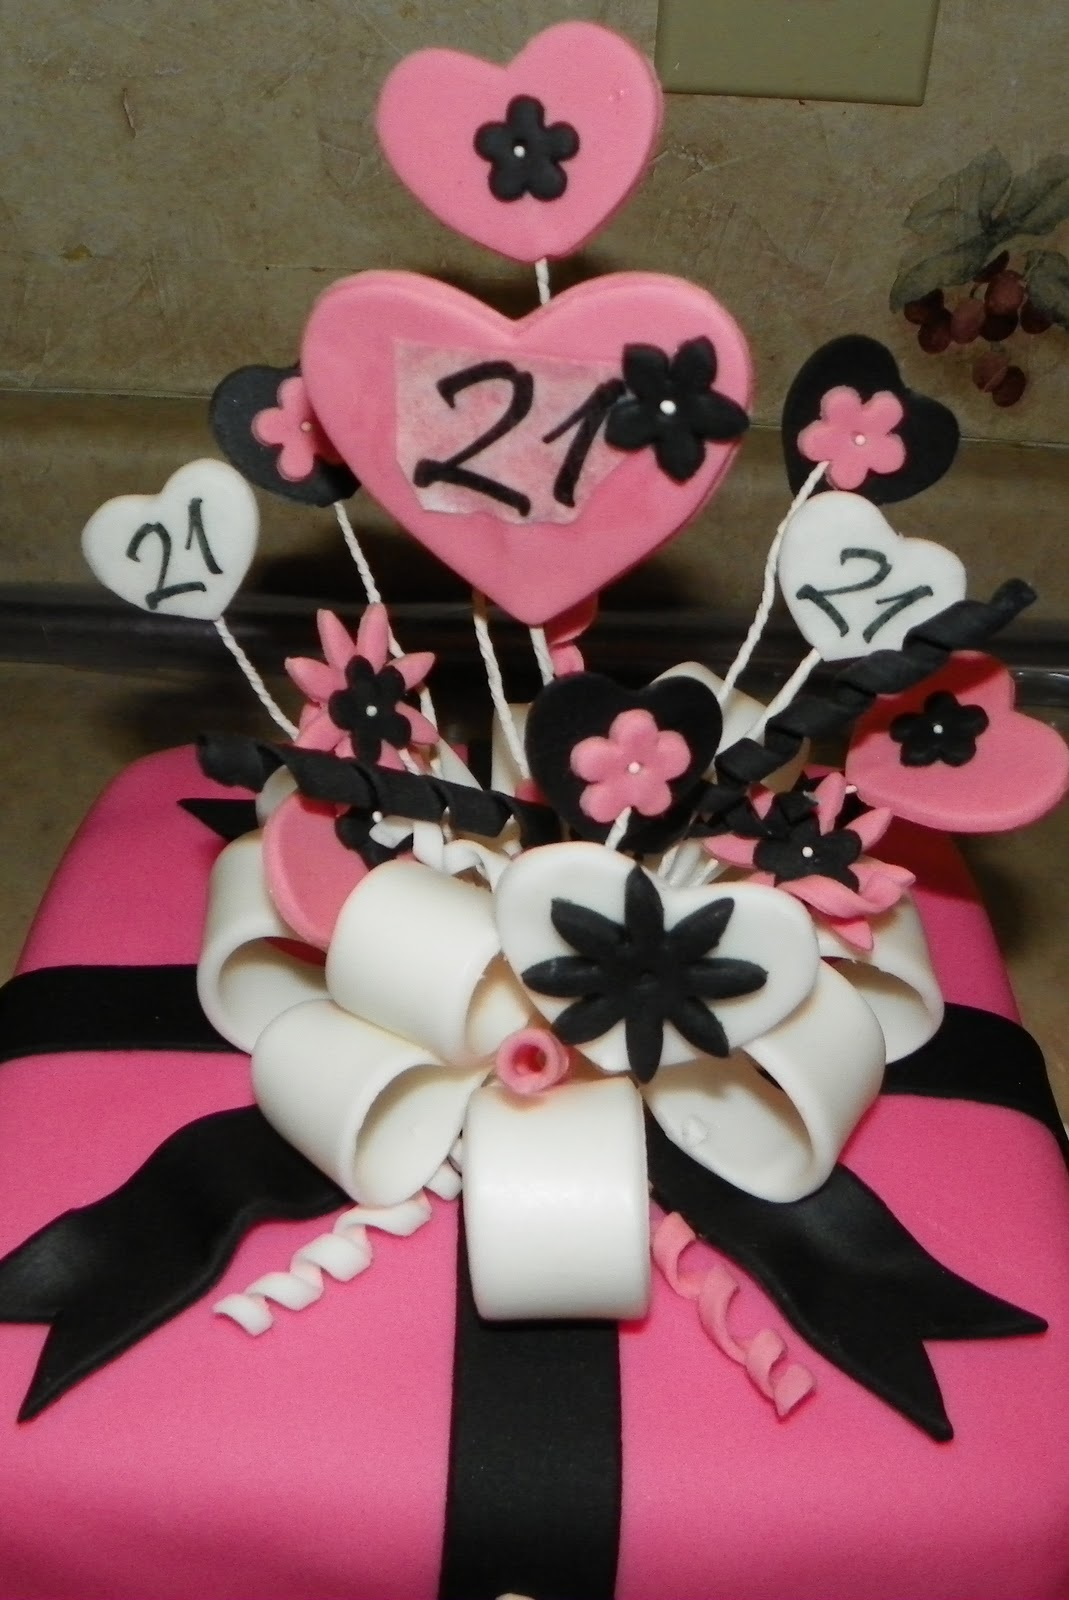 pink heart birthday cakes for teenagers birthday cake designs ideas - Birthday Cake Designs Ideas